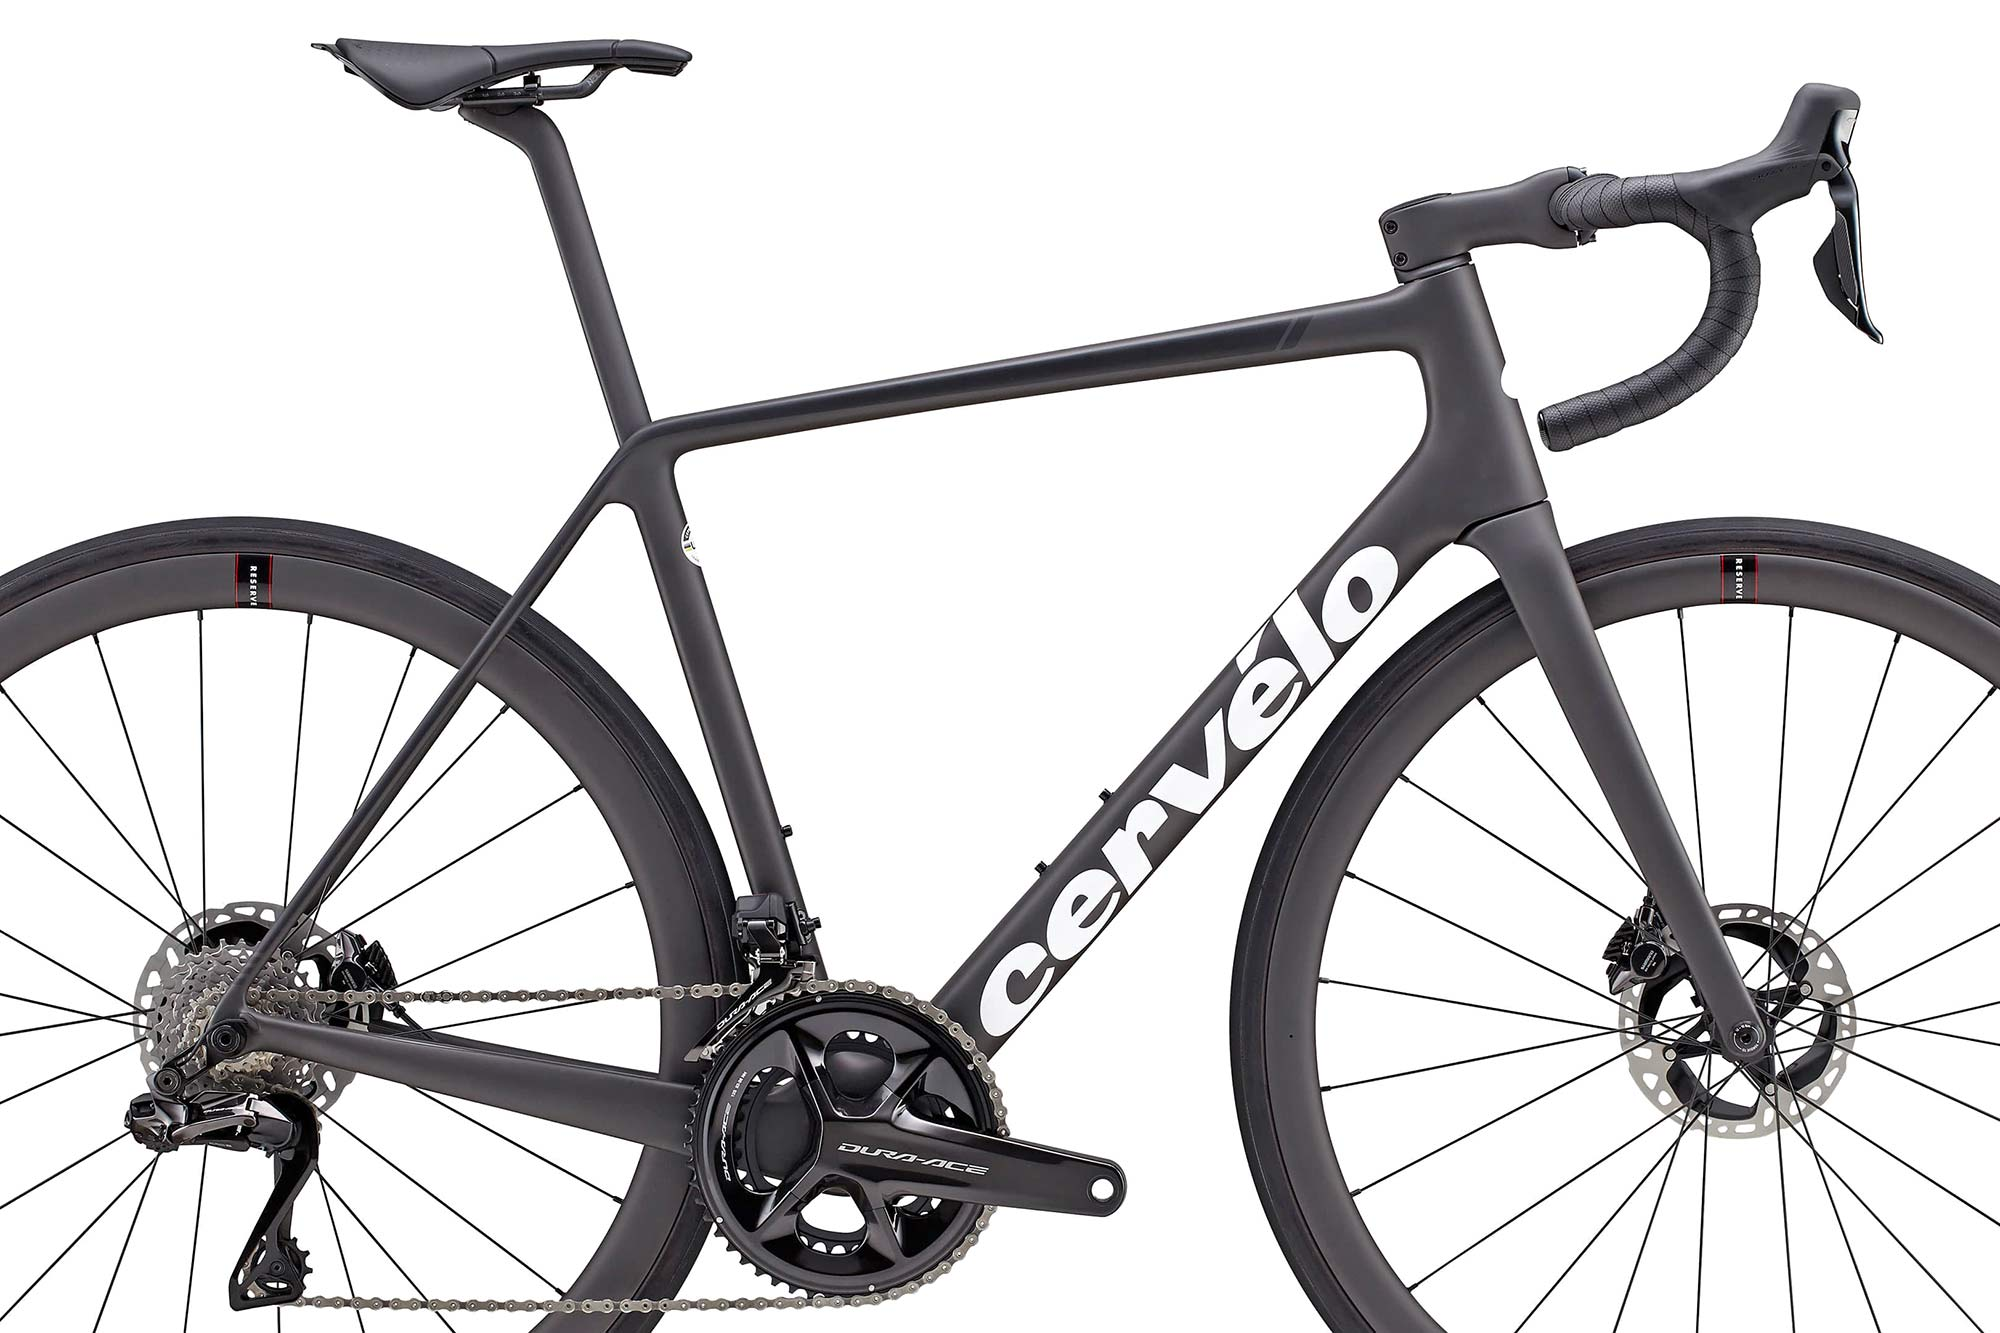 2022 Cervelo R5 Disc lightweight carbon all-rounder classic road bike,Shimano Dura-Ace Di2